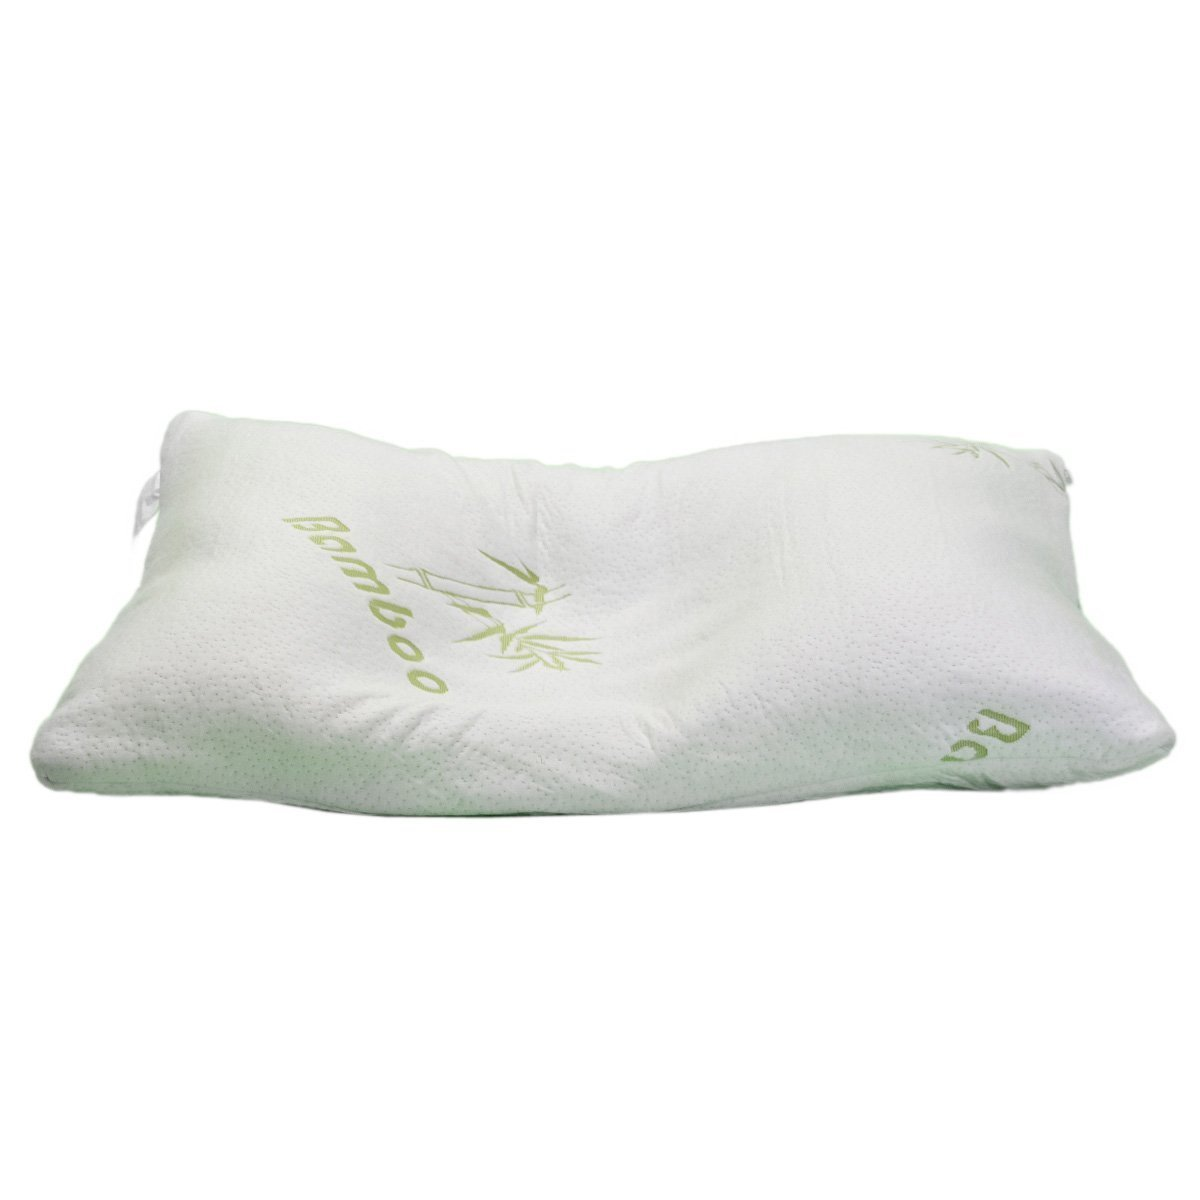 Hotel Comfort Bamboo Pillow With Memory Foam Bamboo